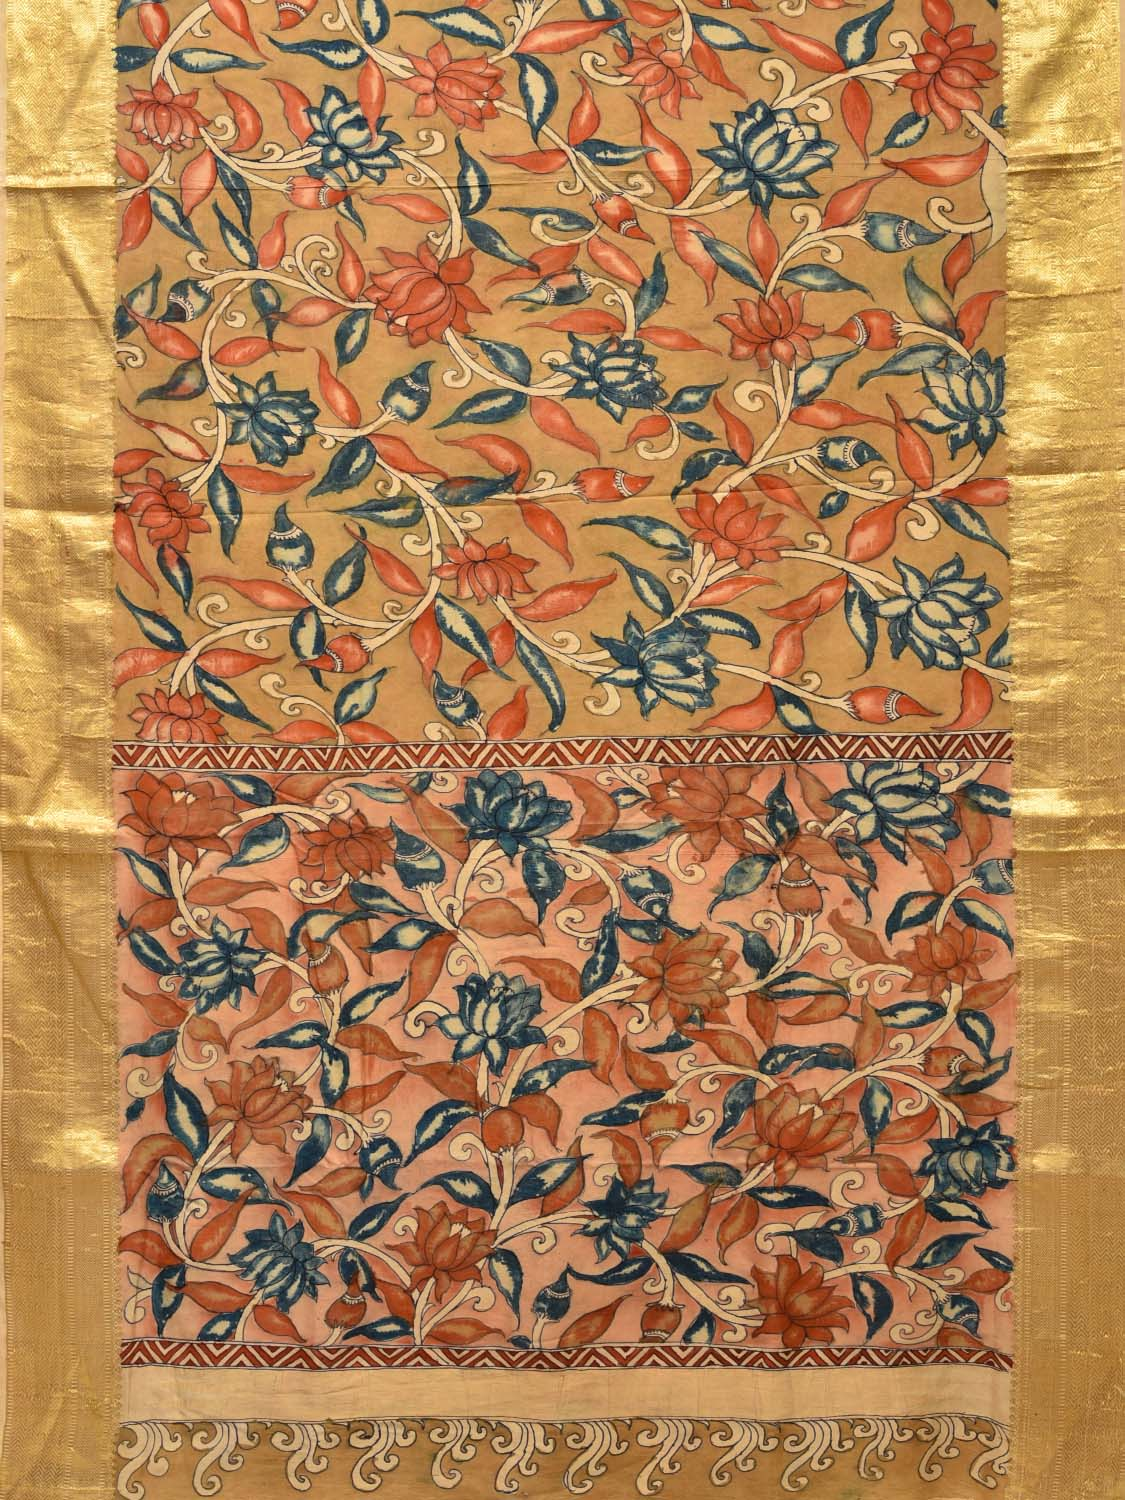 Khaki Kalamkari Hand Painted Kanchipuram Silk Handloom Saree with All Over Leaves and Lotus Flowers Design KL0214